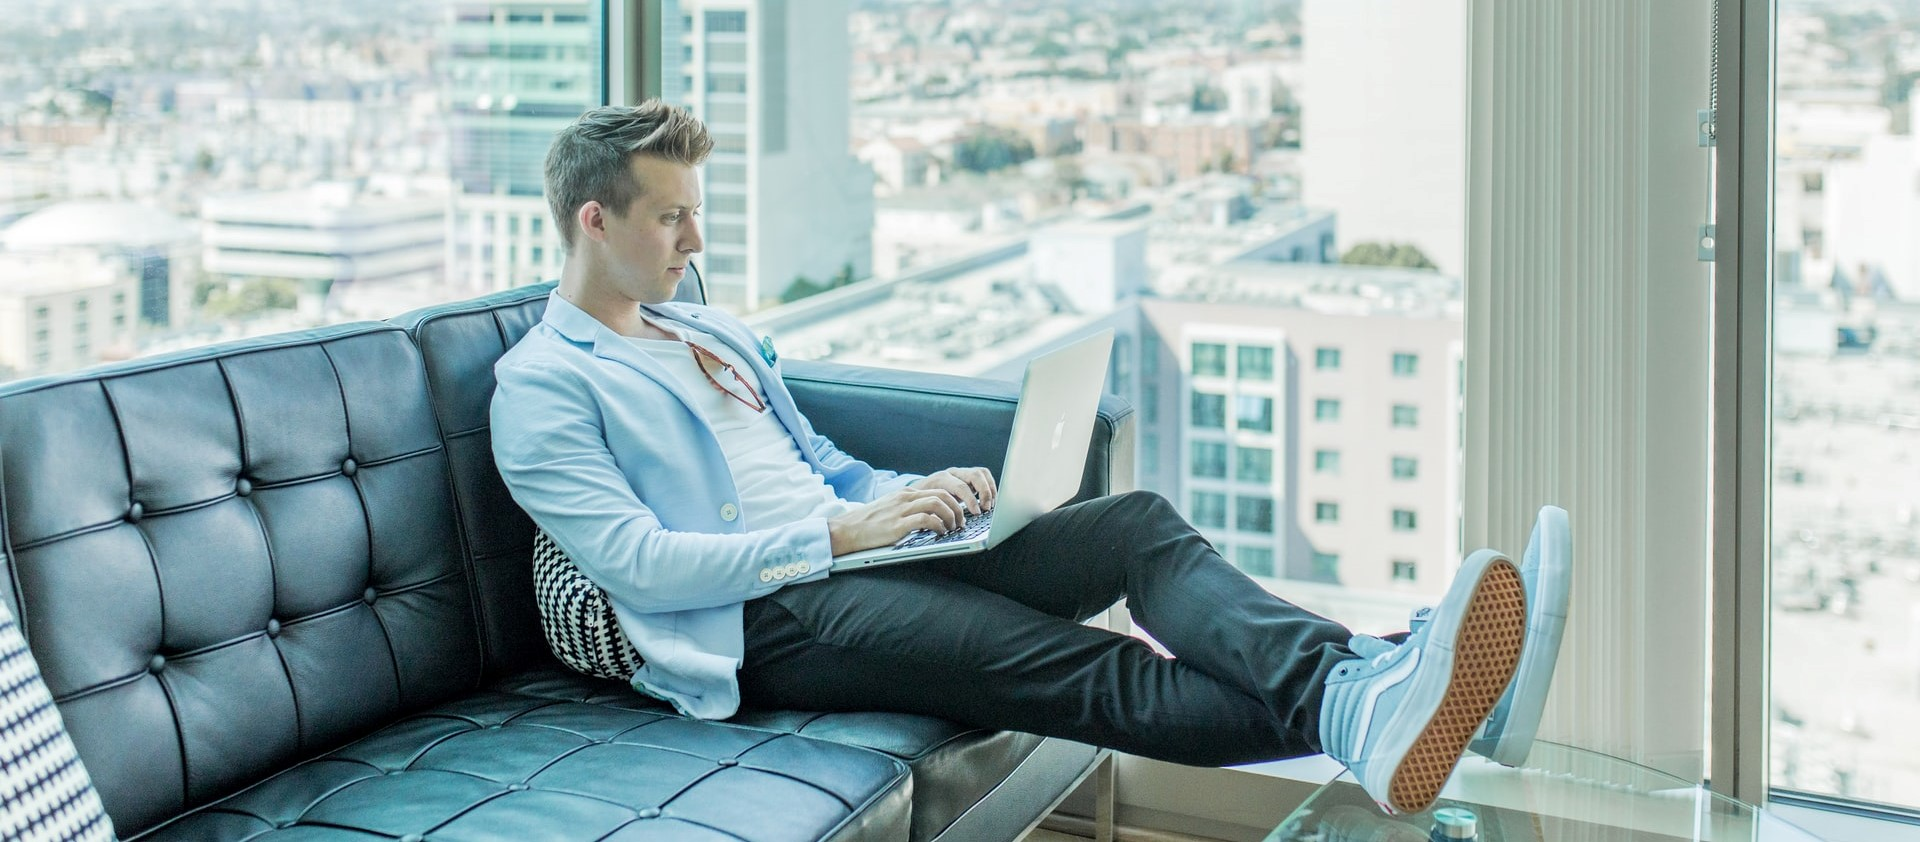 Man using a laptop in couch